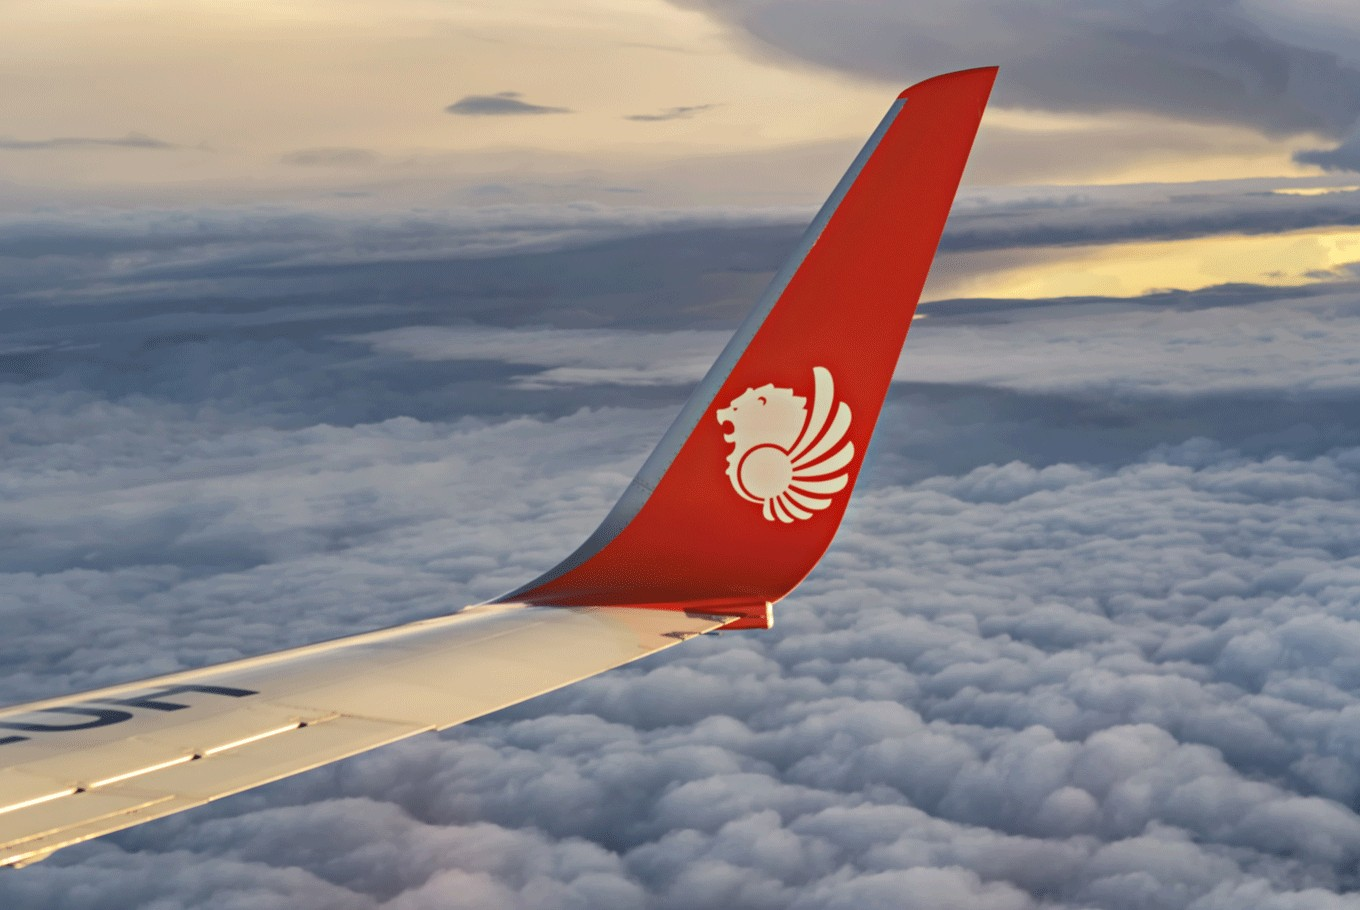 'Scorpion' found in cabin of Lion Air plane